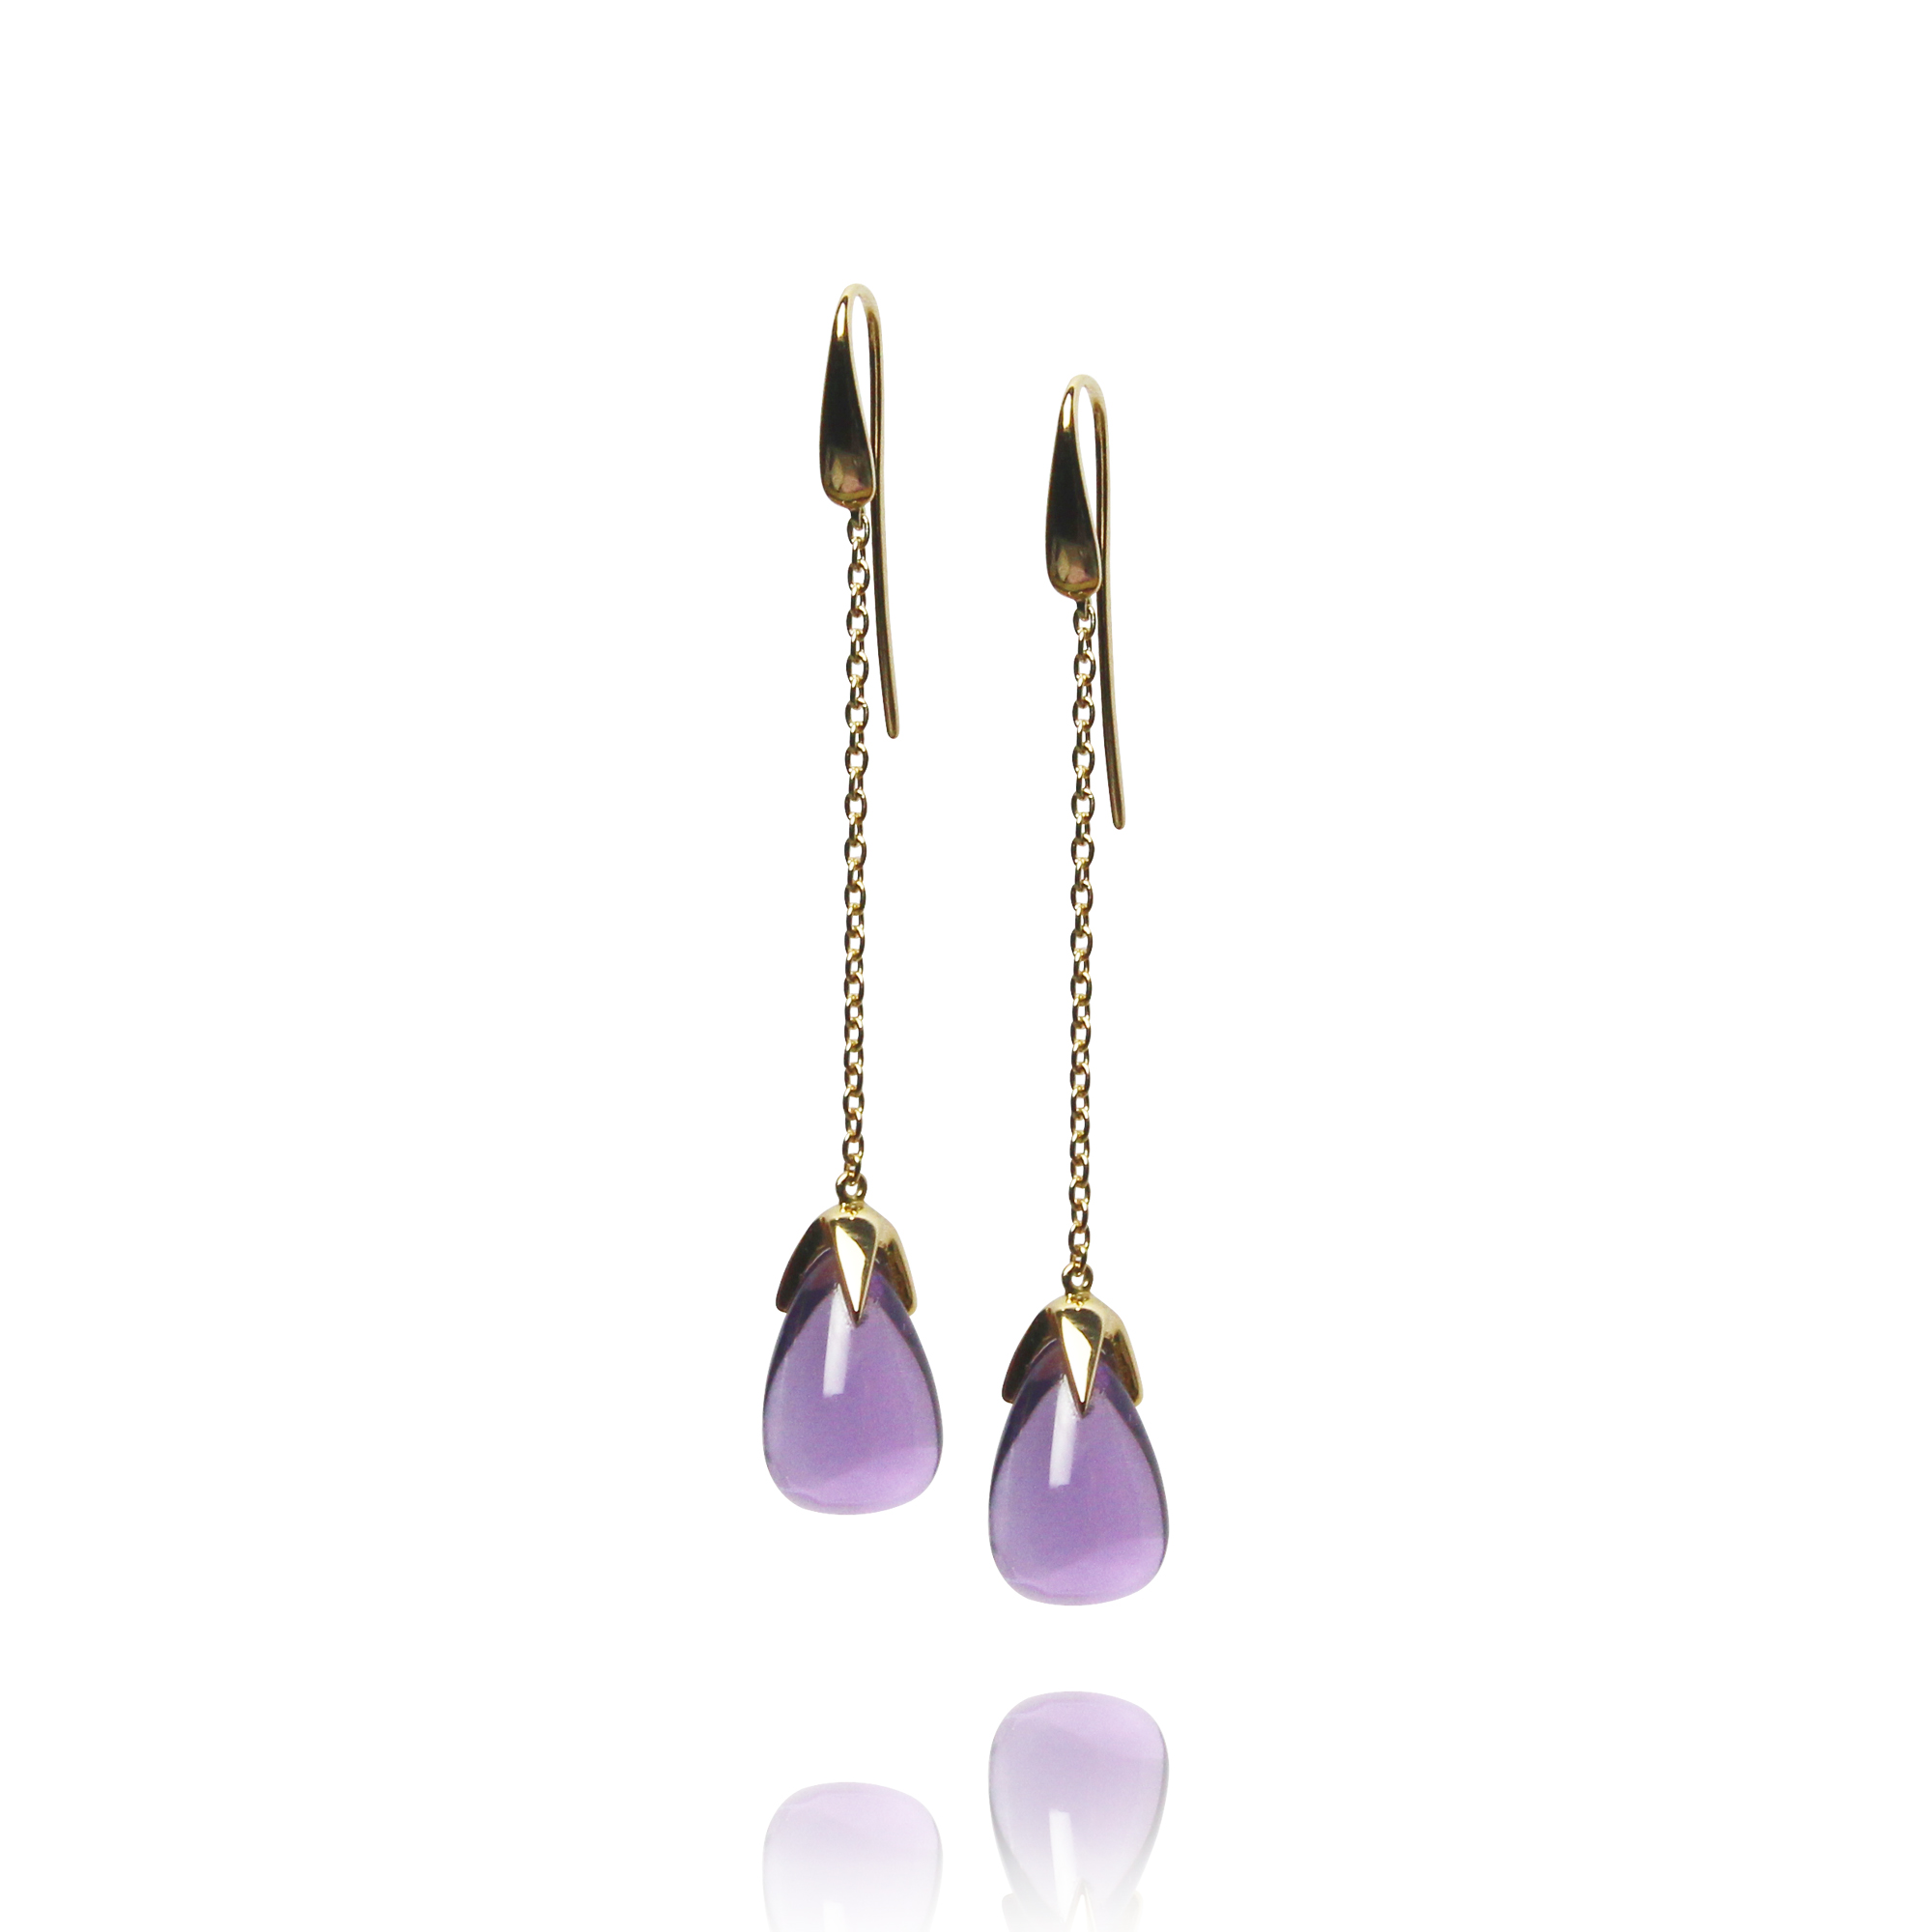 earrings caramelle yellow gold 18 carat amethyst